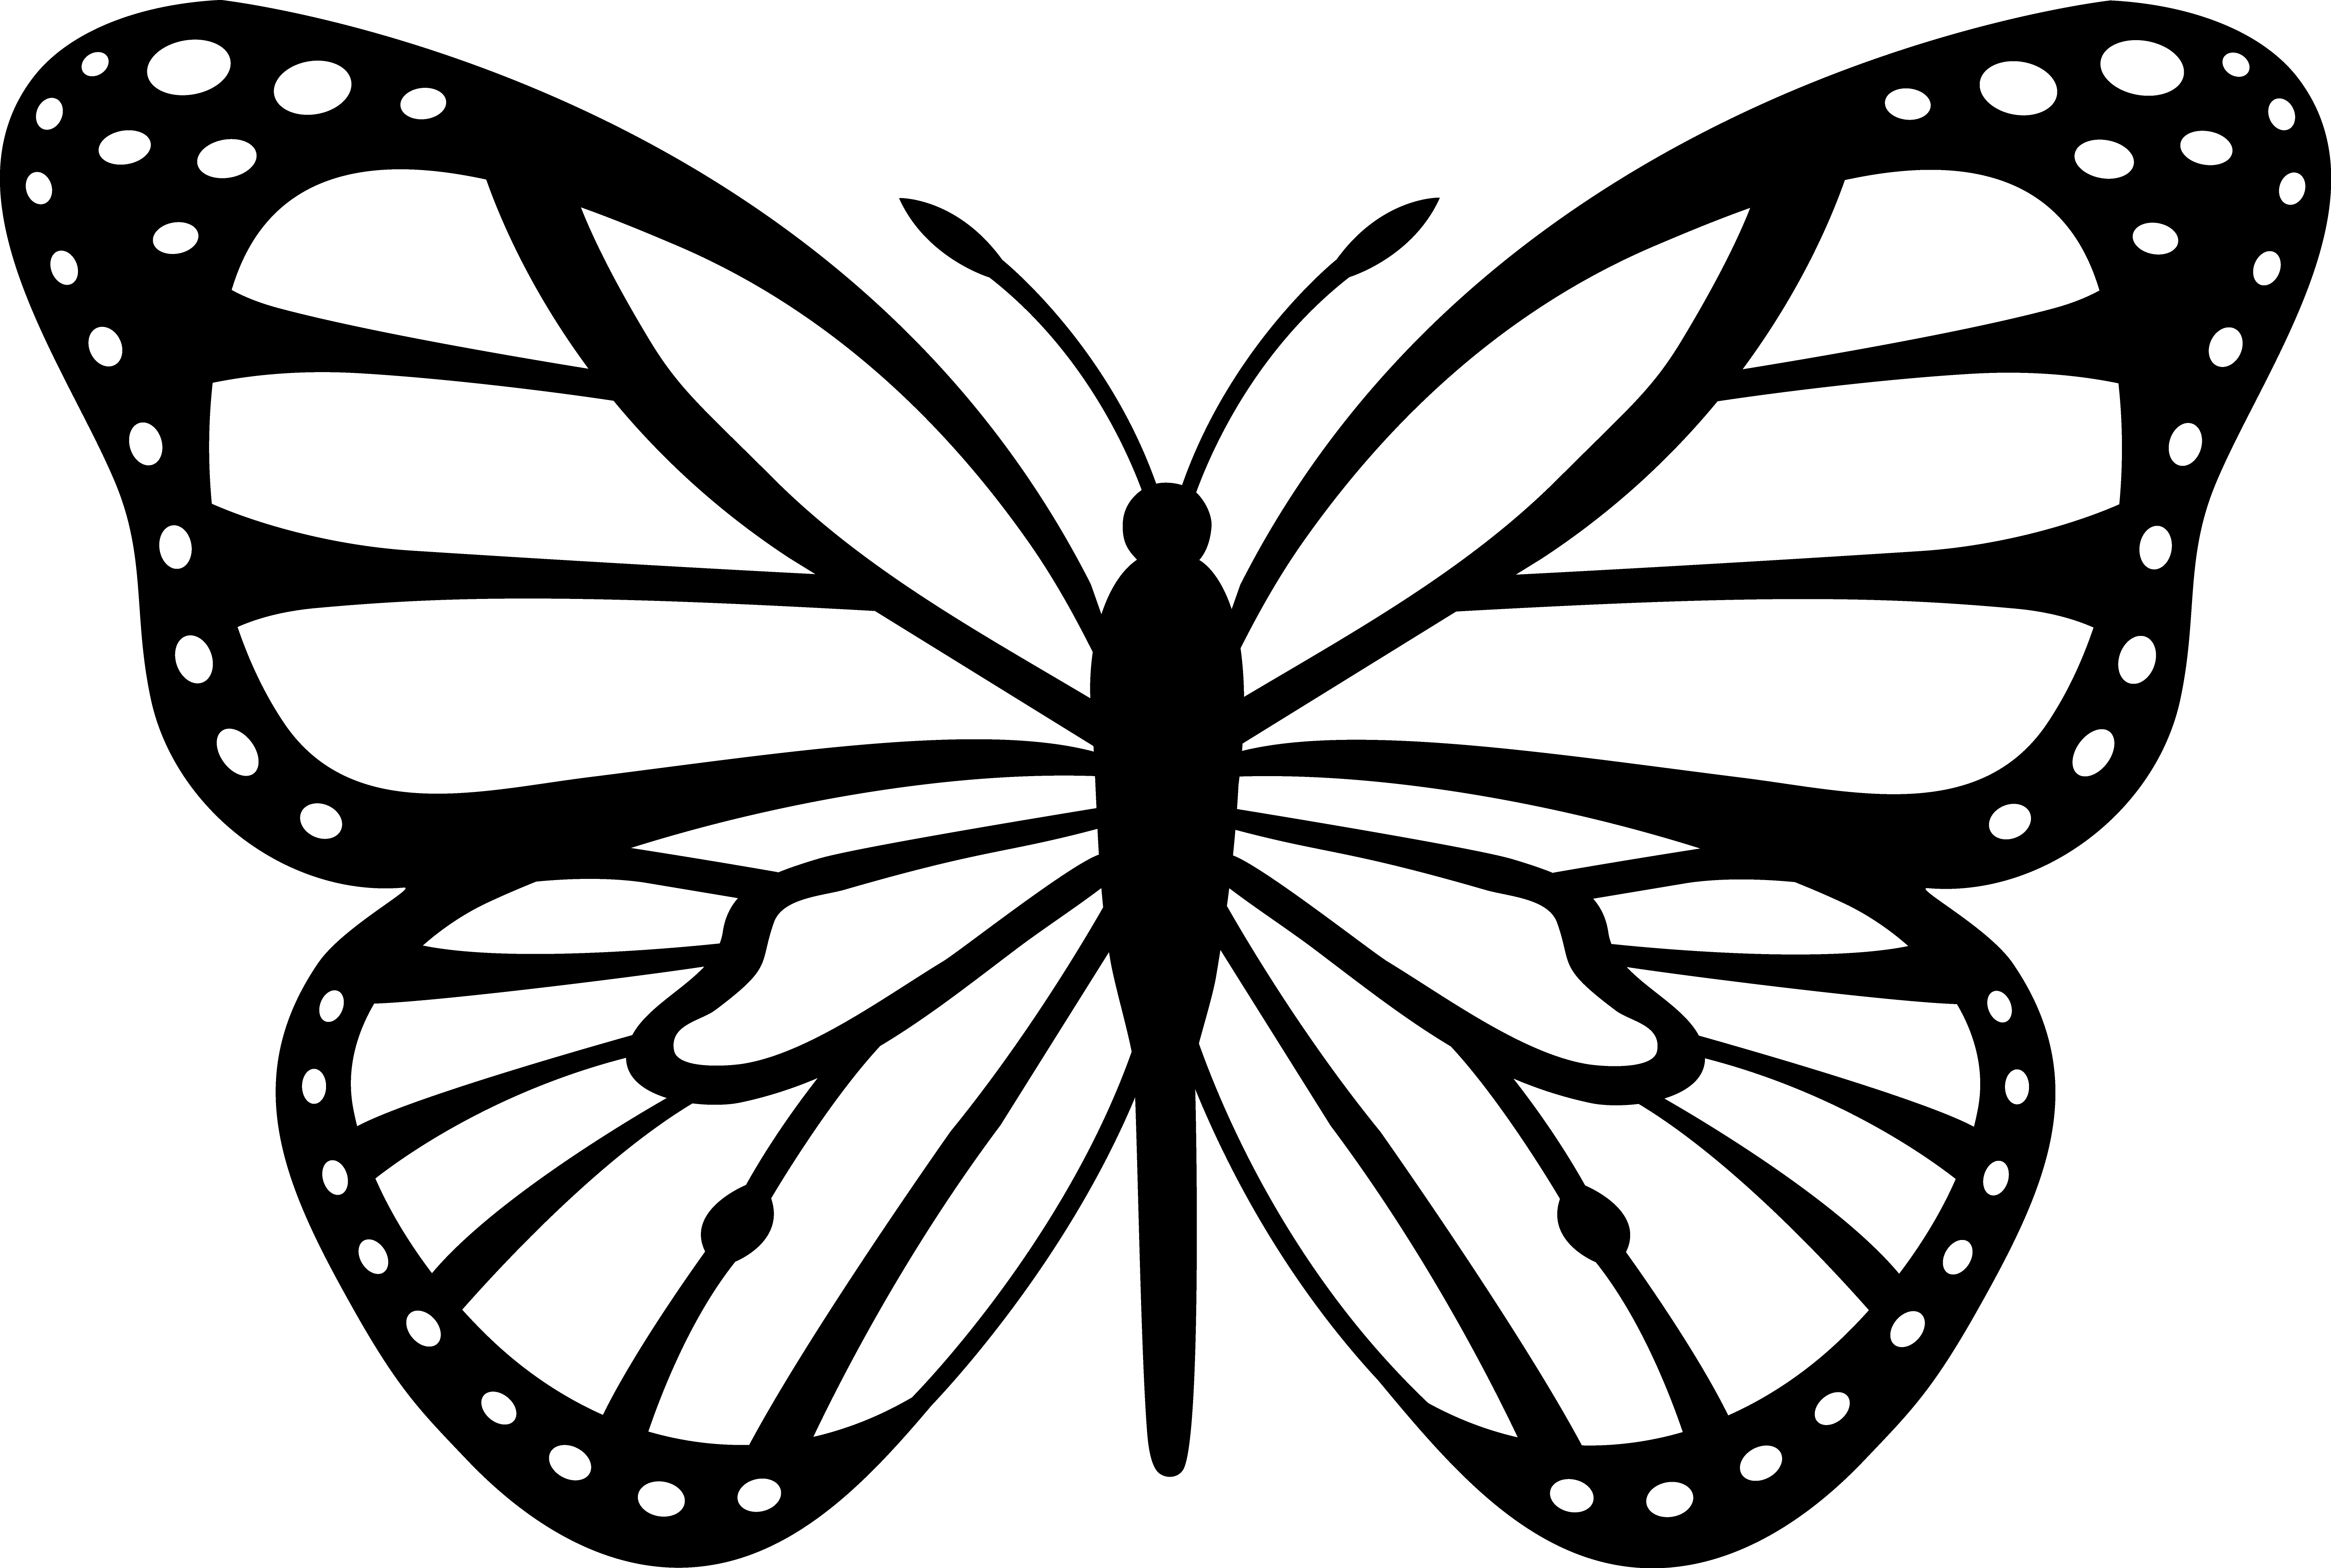 Free Butterfly Clipart U0026middot; Whit-free butterfly clipart u0026middot; white clipart-18